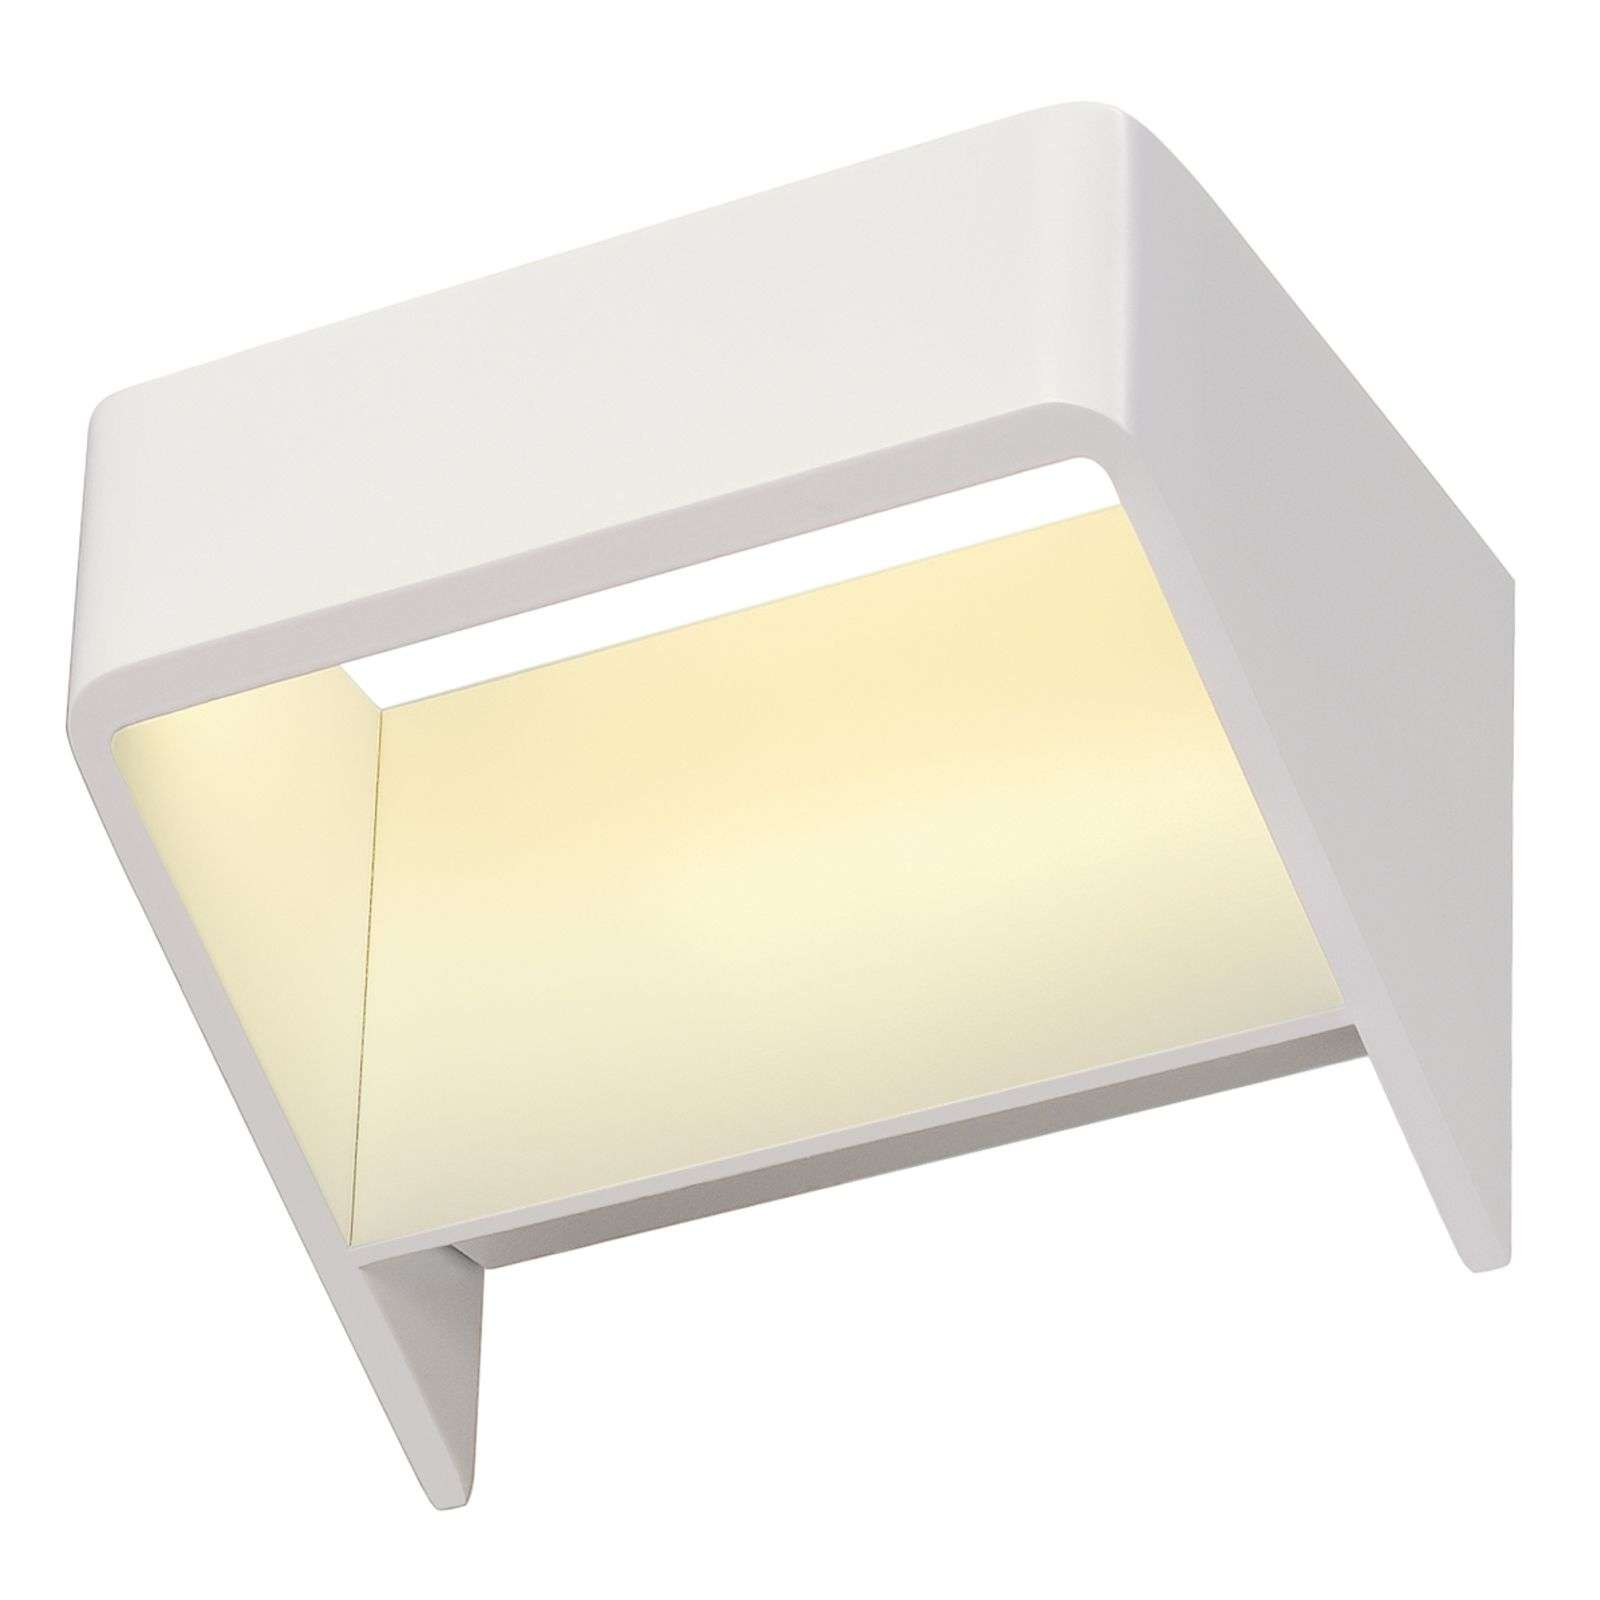 Applique fascinante LED DACU SPACE blanche